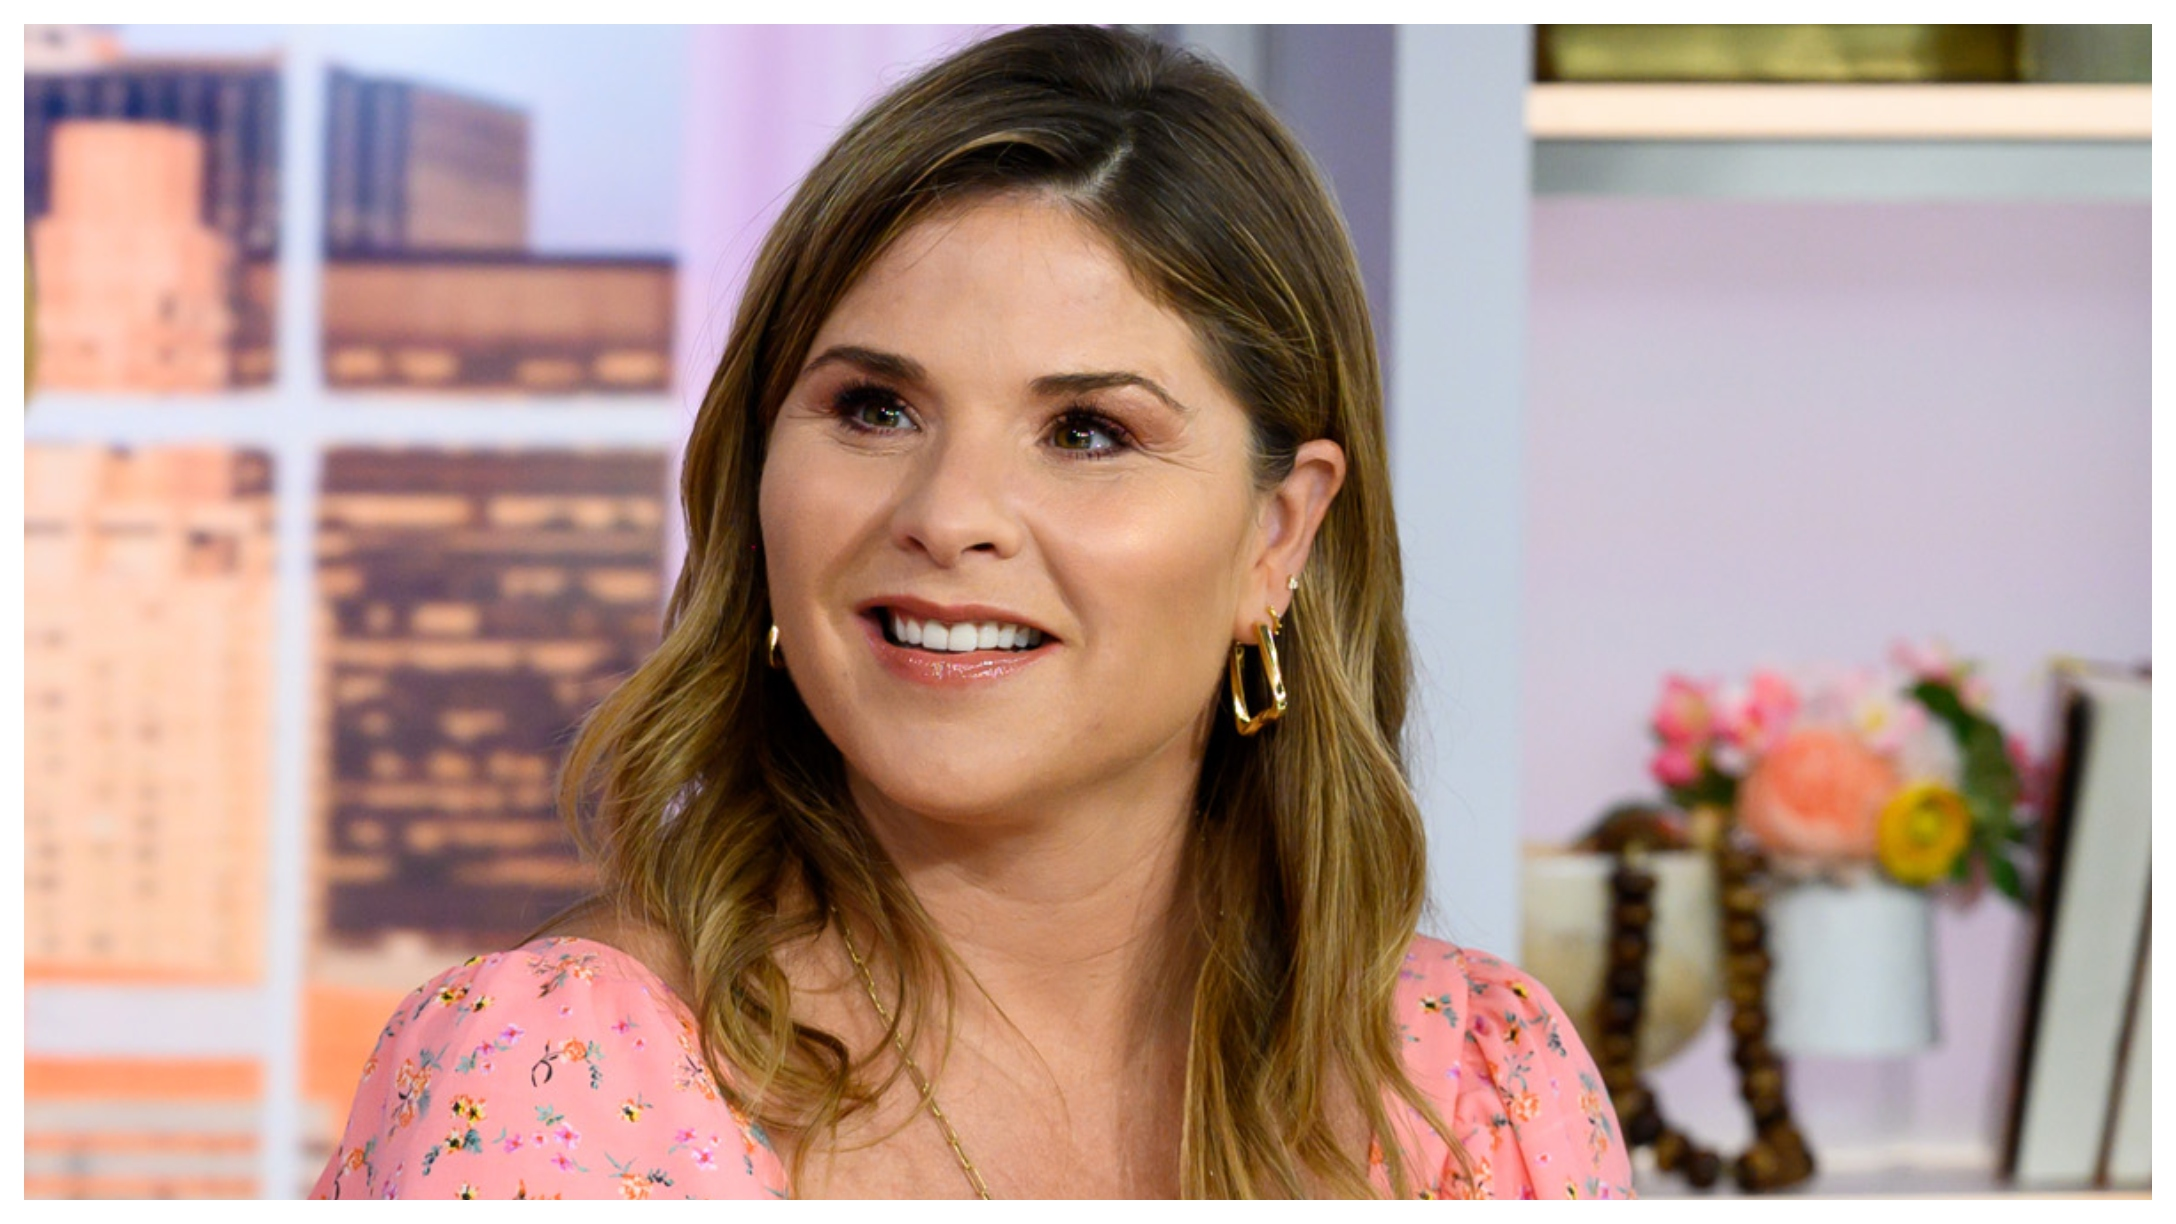 Jenna Bush Hager Shares Heartbreaking Letter Her Daughter Mila Sent Home From Camp